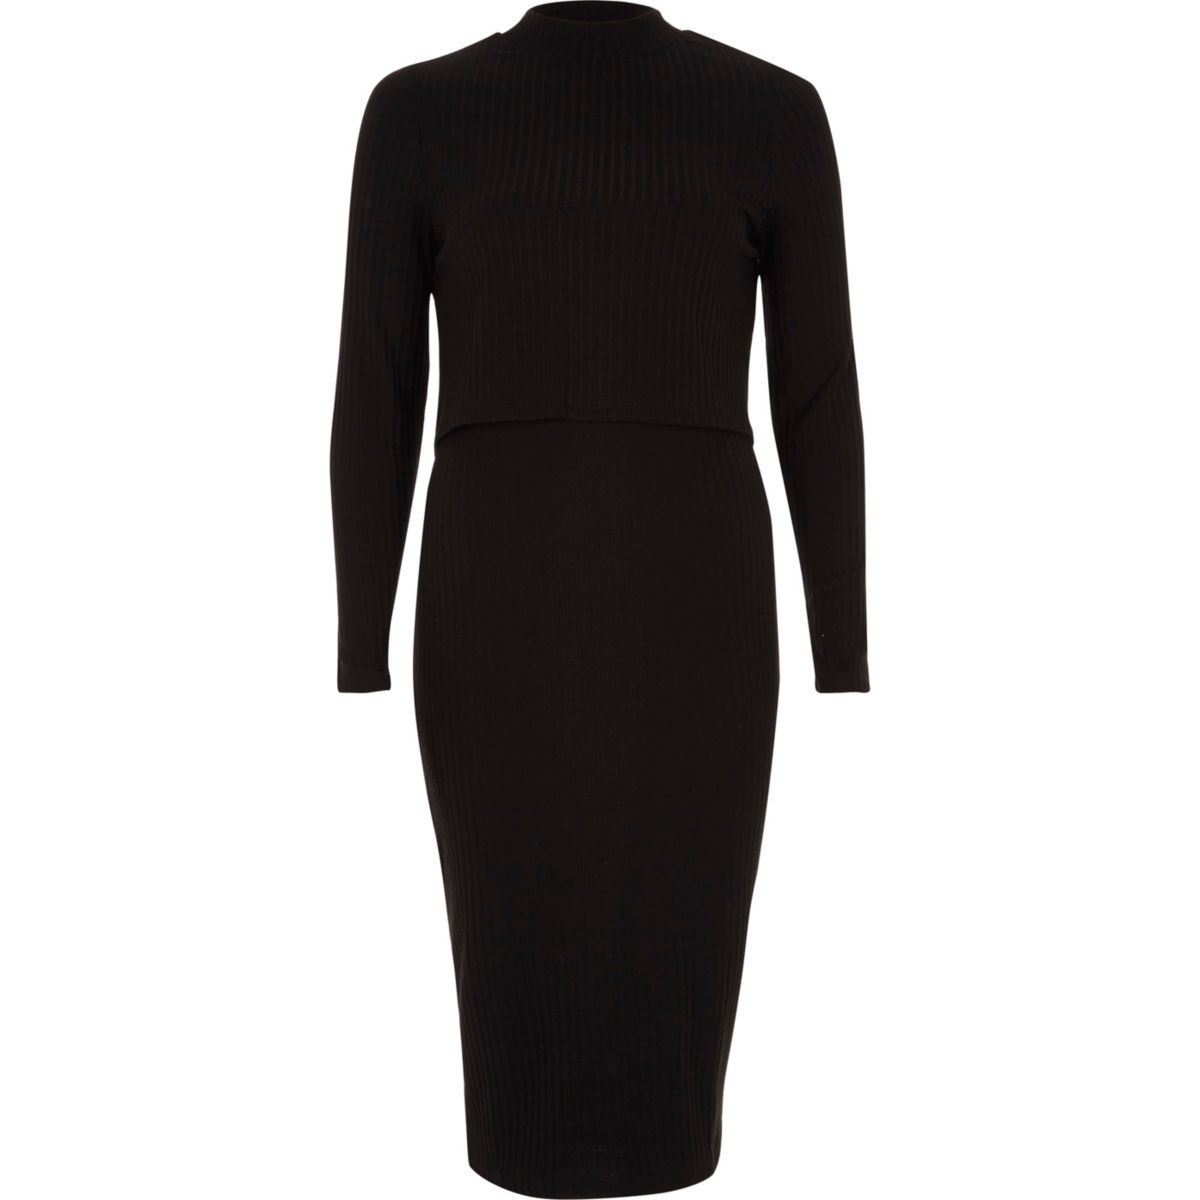 Black rib double layer bodycon midi dress